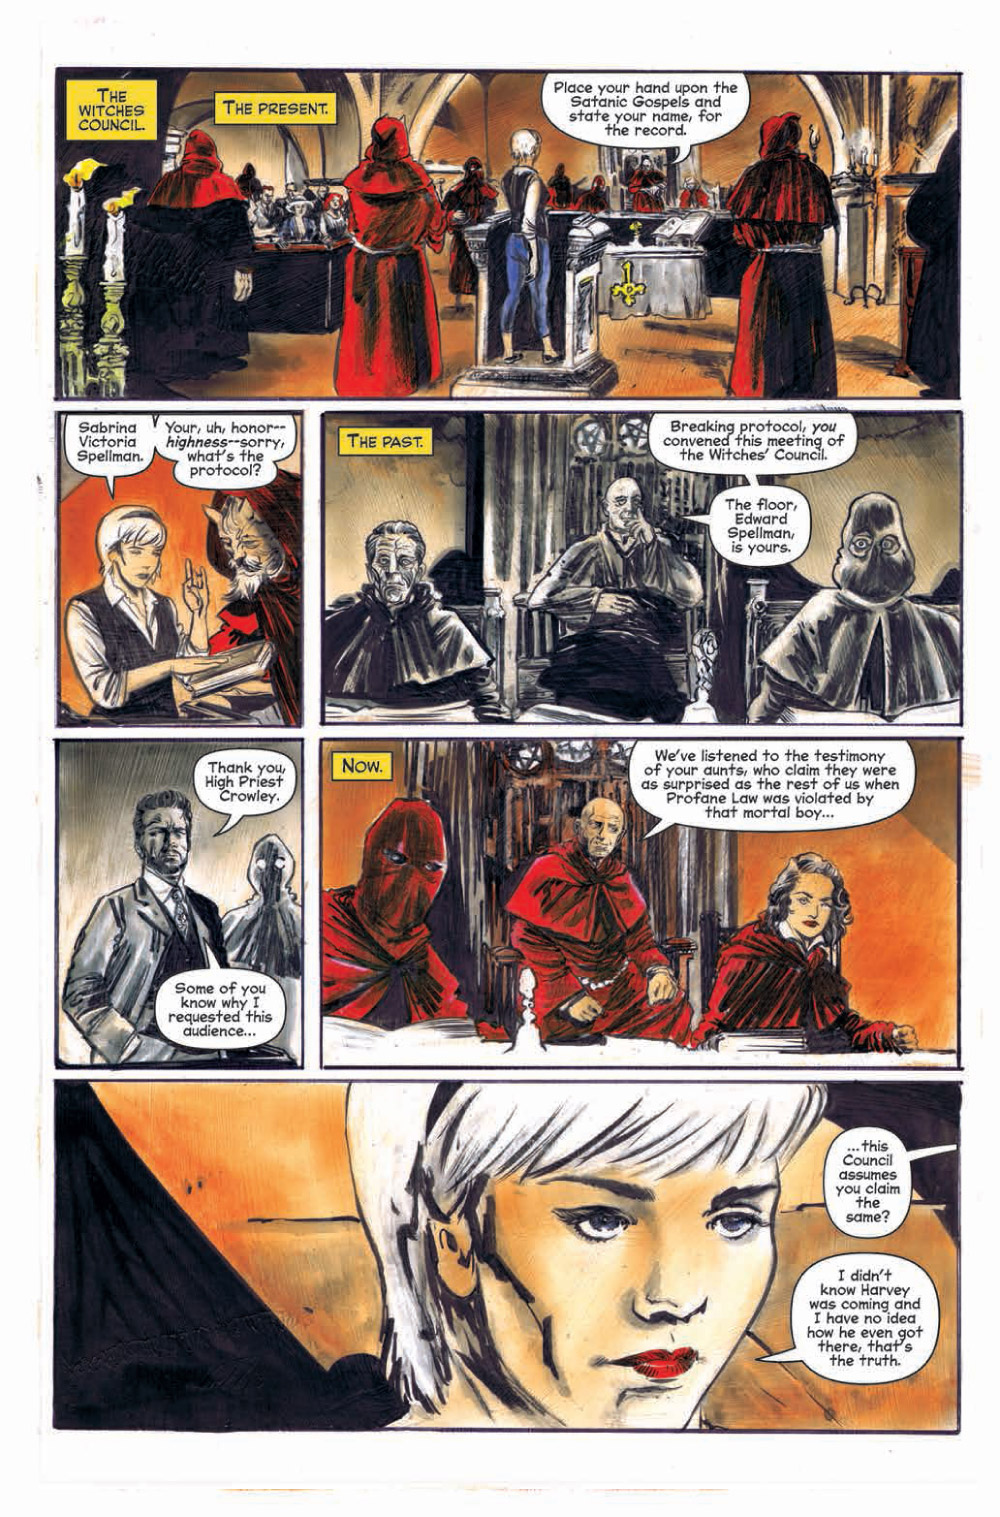 Chilling Adventures of Sabrina #5 First Look